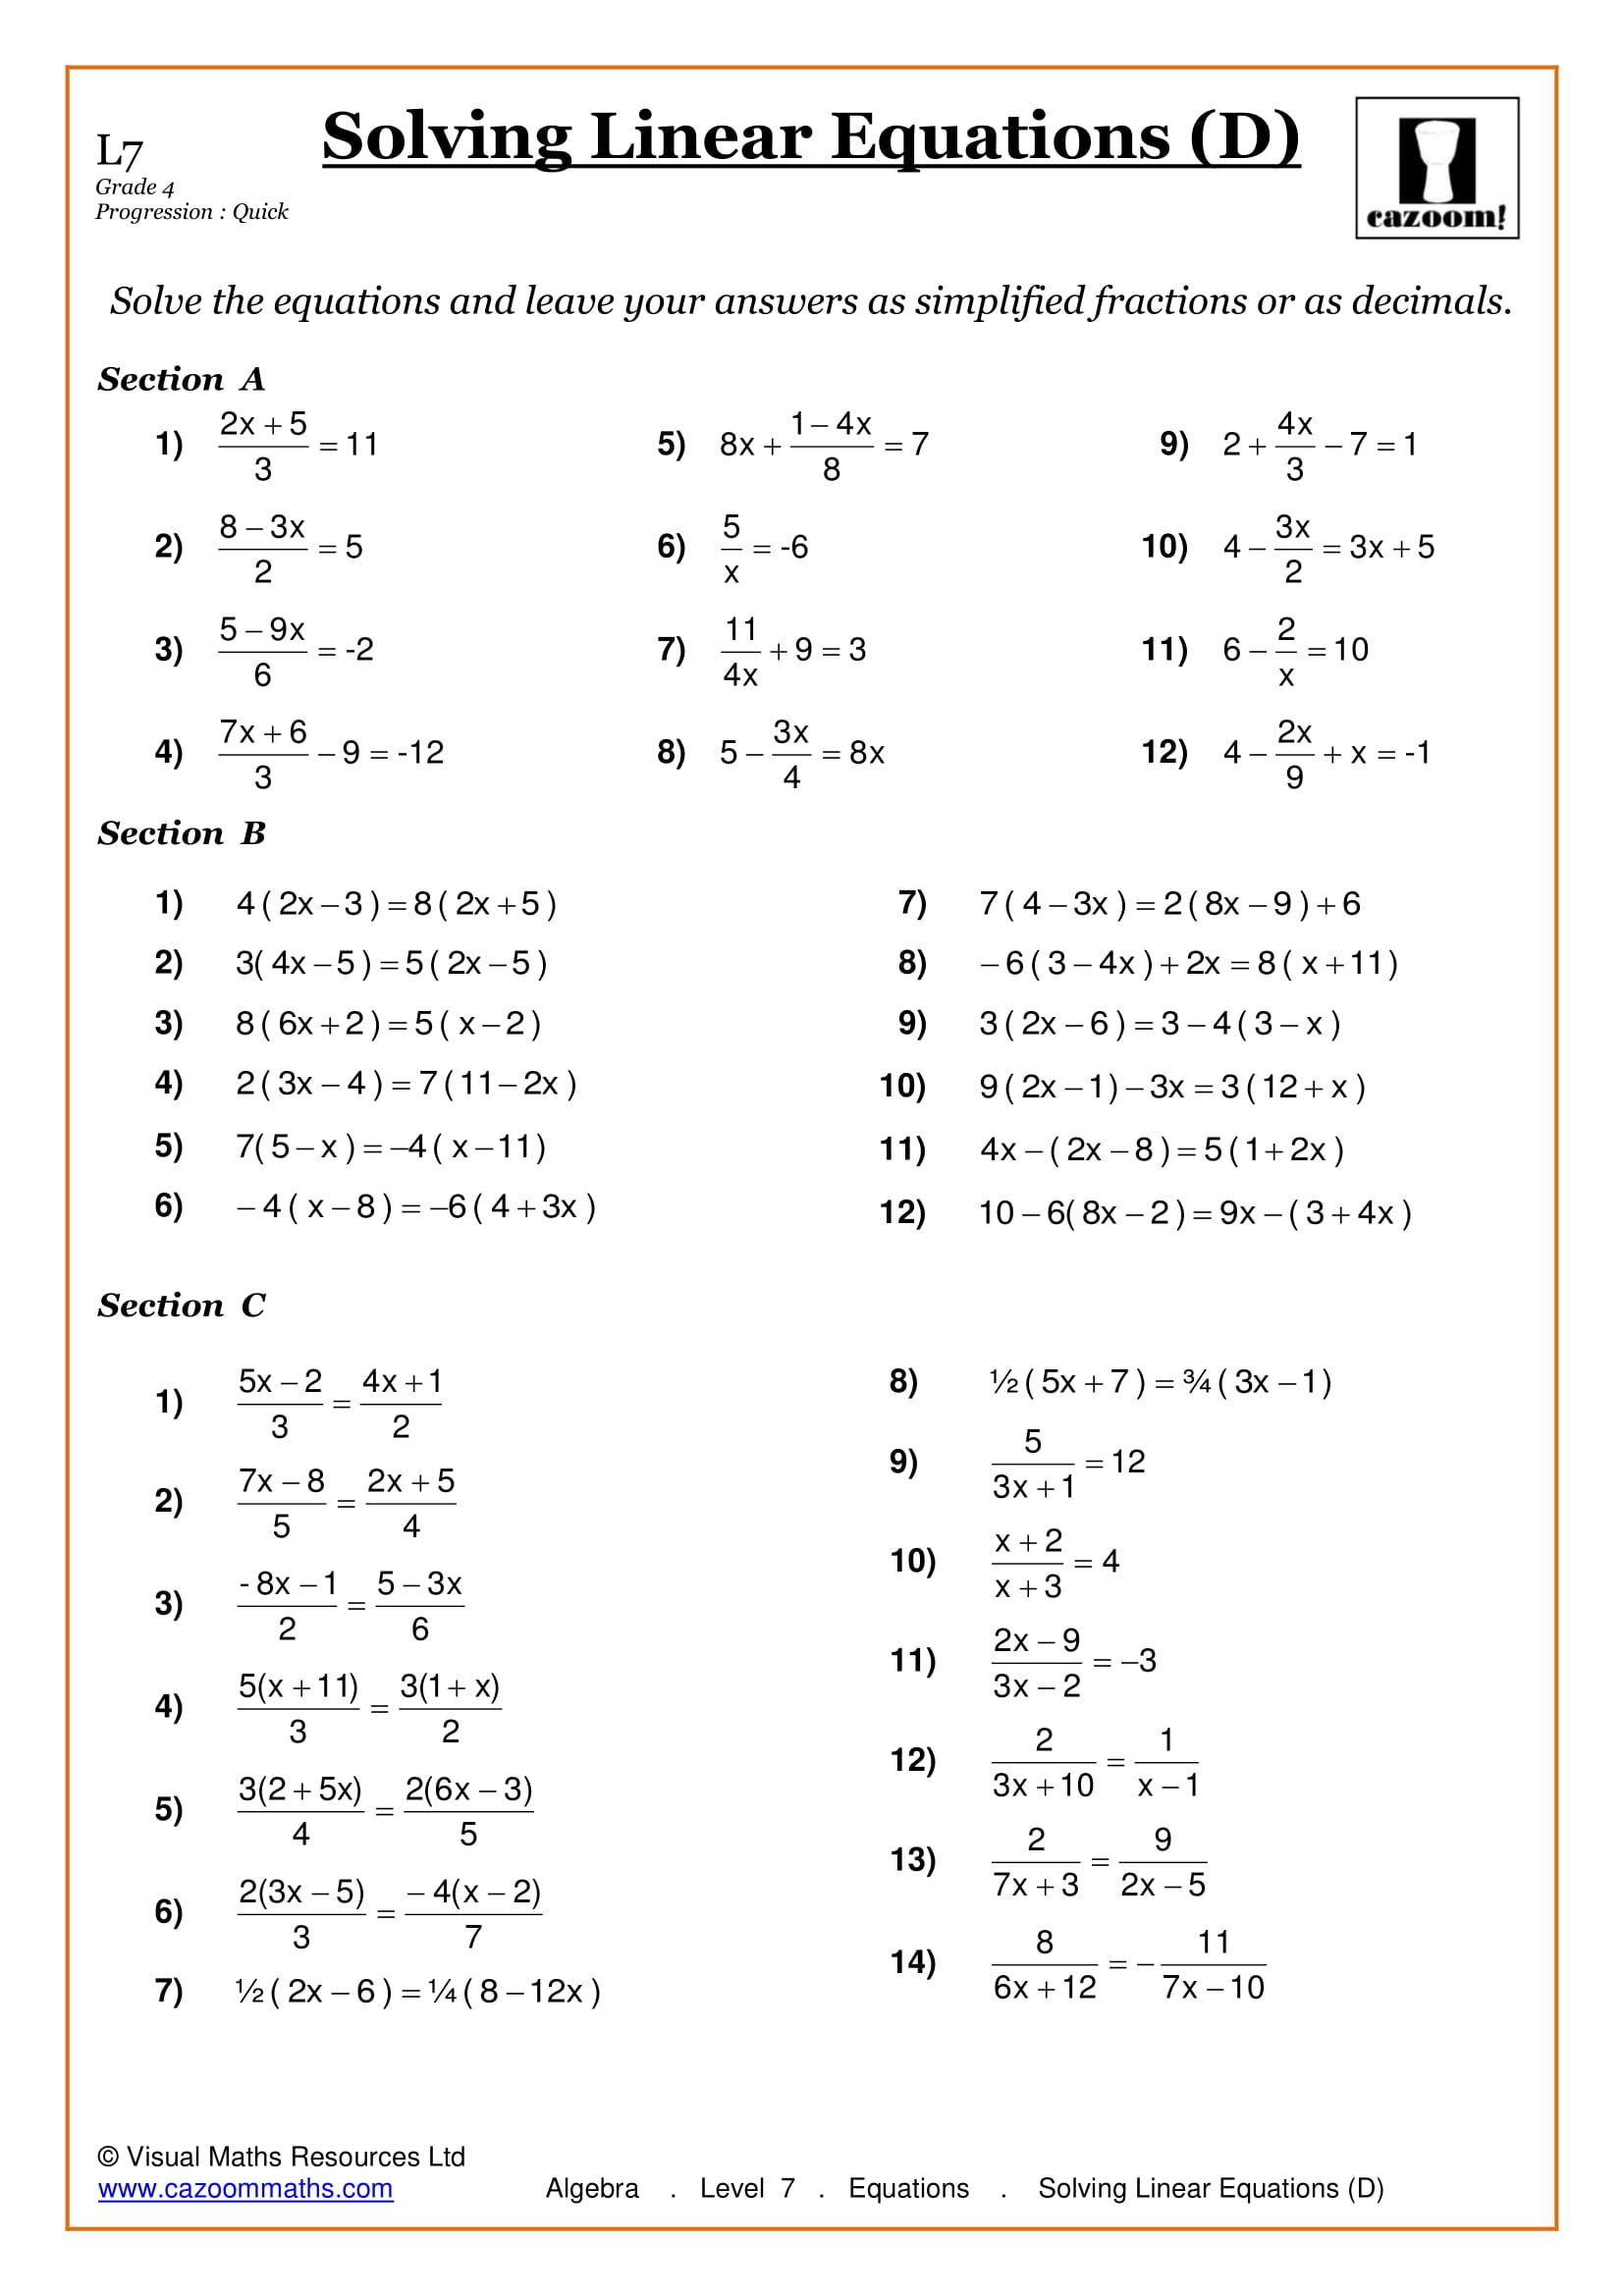 Maths Worksheets Ks3 Ks4 Printable Pdf Worksheets Algebra Worksheets Solving Linear Equations Pre Algebra Worksheets